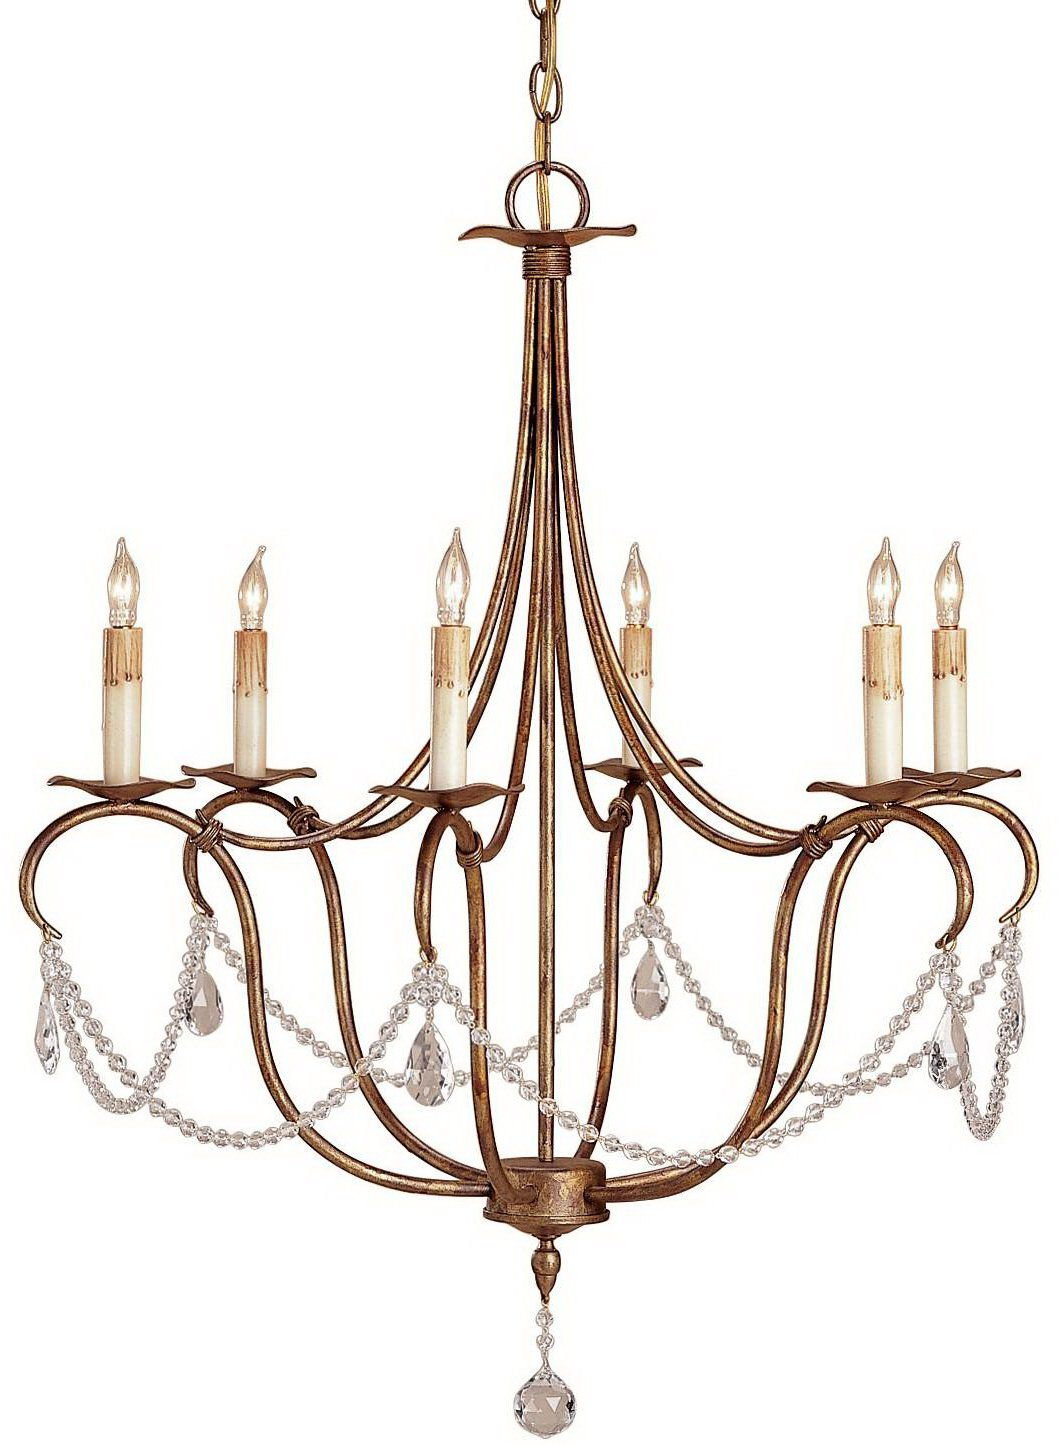 South S Decorating Currey And Company 9880 Crystal Lights Traditional Chandelier Small Cnc